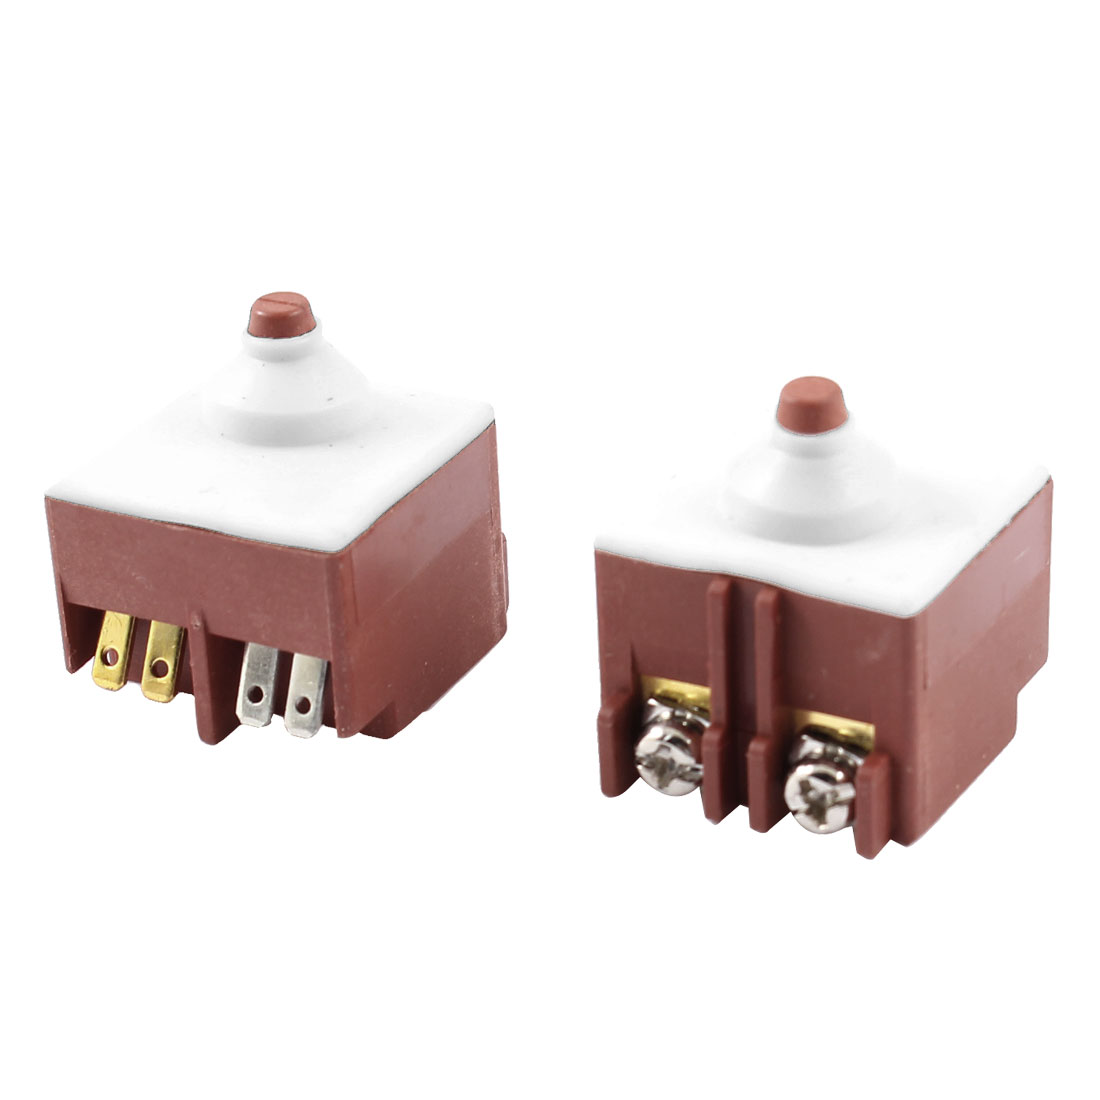 2 Pcs FA6-5/1D-24 Momentary Trigger Switch AC 250V 8A for Bosch Angle Grinder 6-100